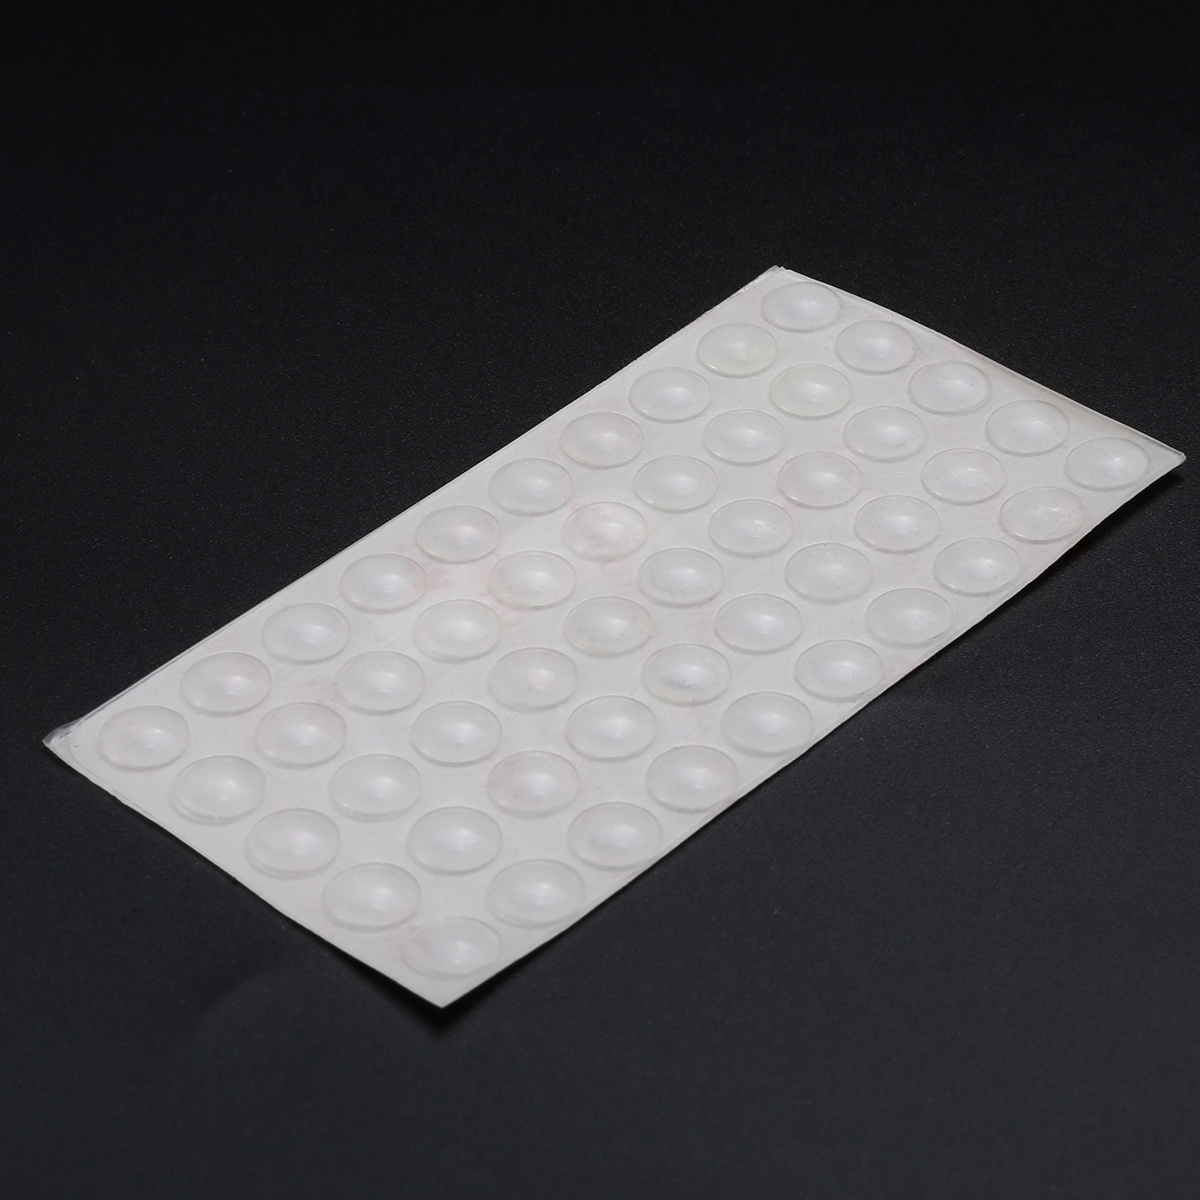 50Pcs/set Self Adhesive Rubber Feet Pads Clear Cupboard Door Close Silicone Buffer Bumpe ...